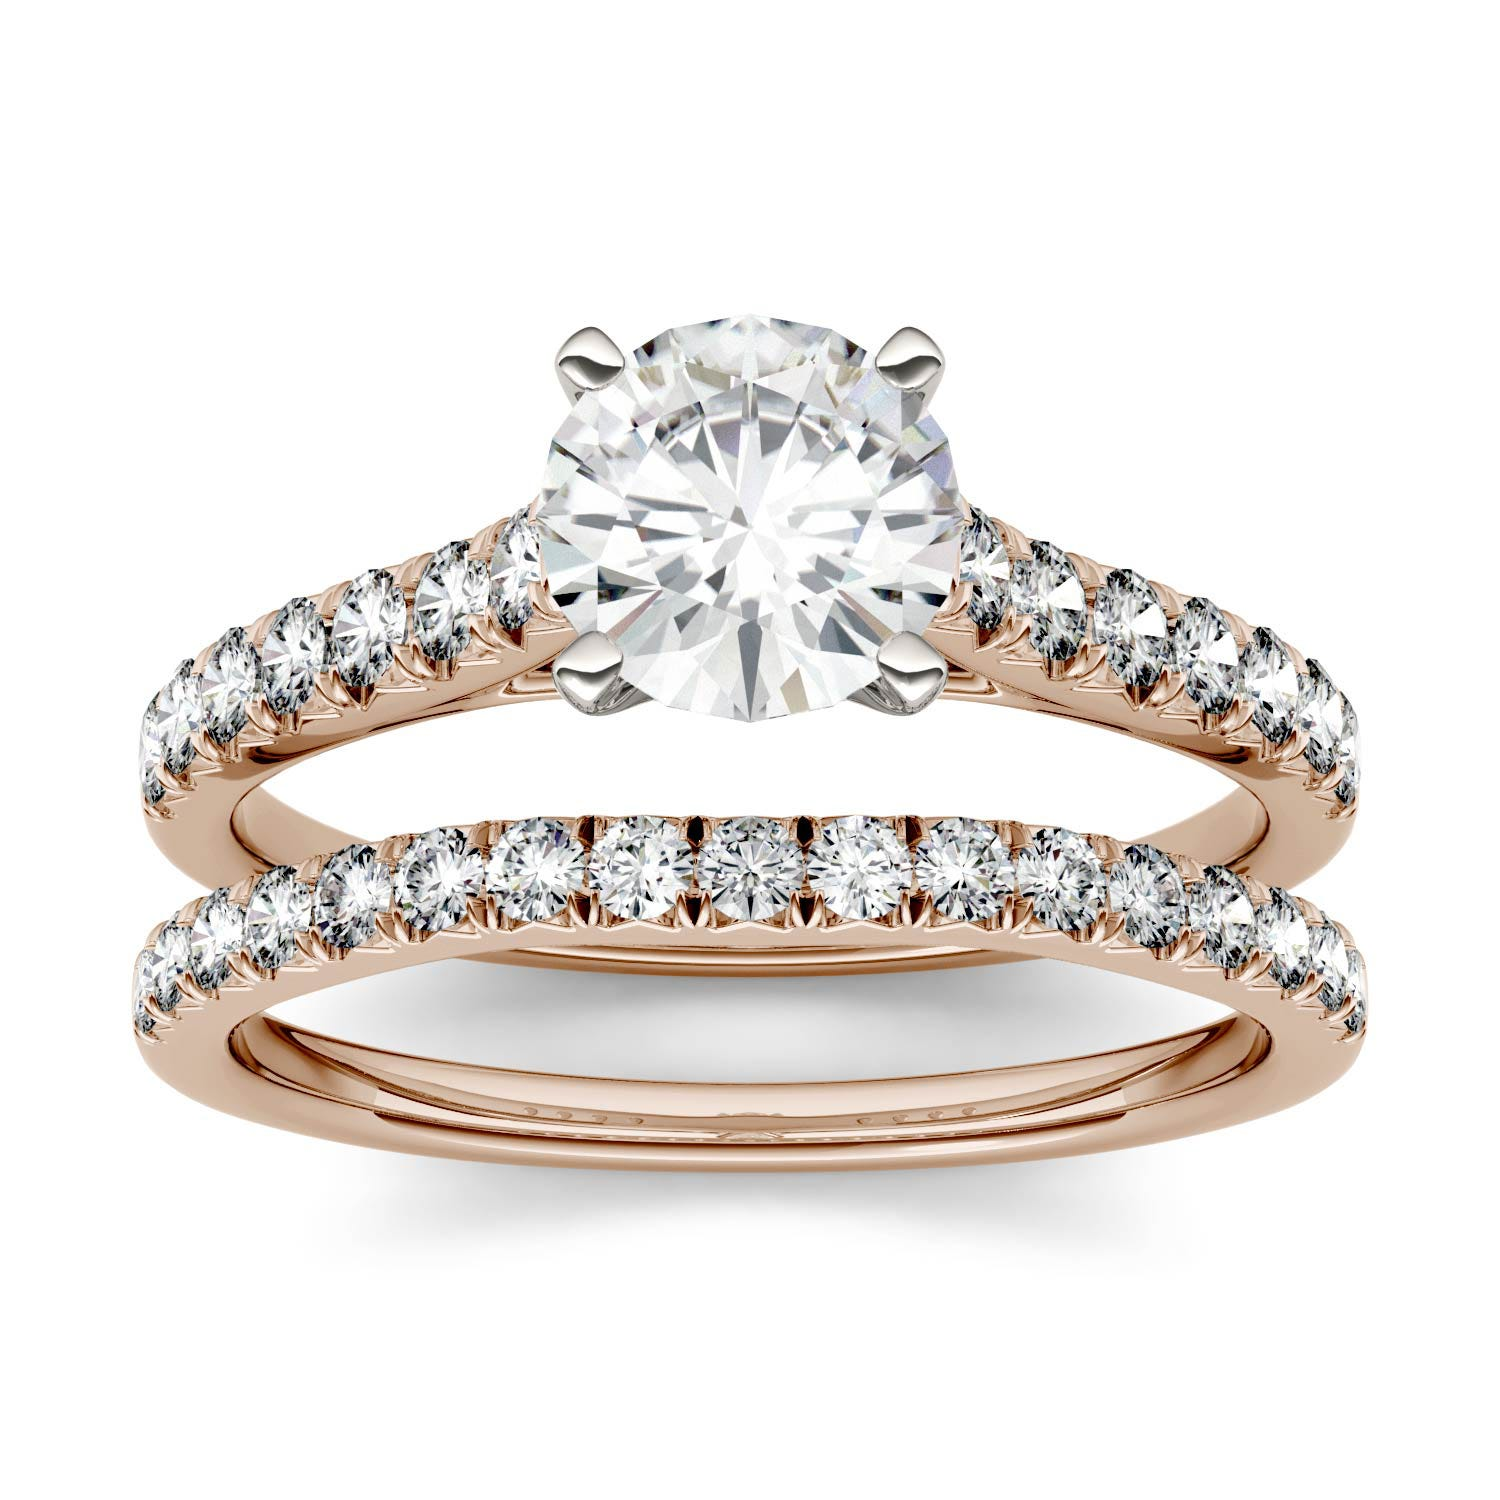 Solitaire with Side Accents Bridal Set Engagement Ring in 14K Rose Gold, Size: 8, 1.6CTW Round Forever One - Near-Colorless Moissanite Charles & Colvard